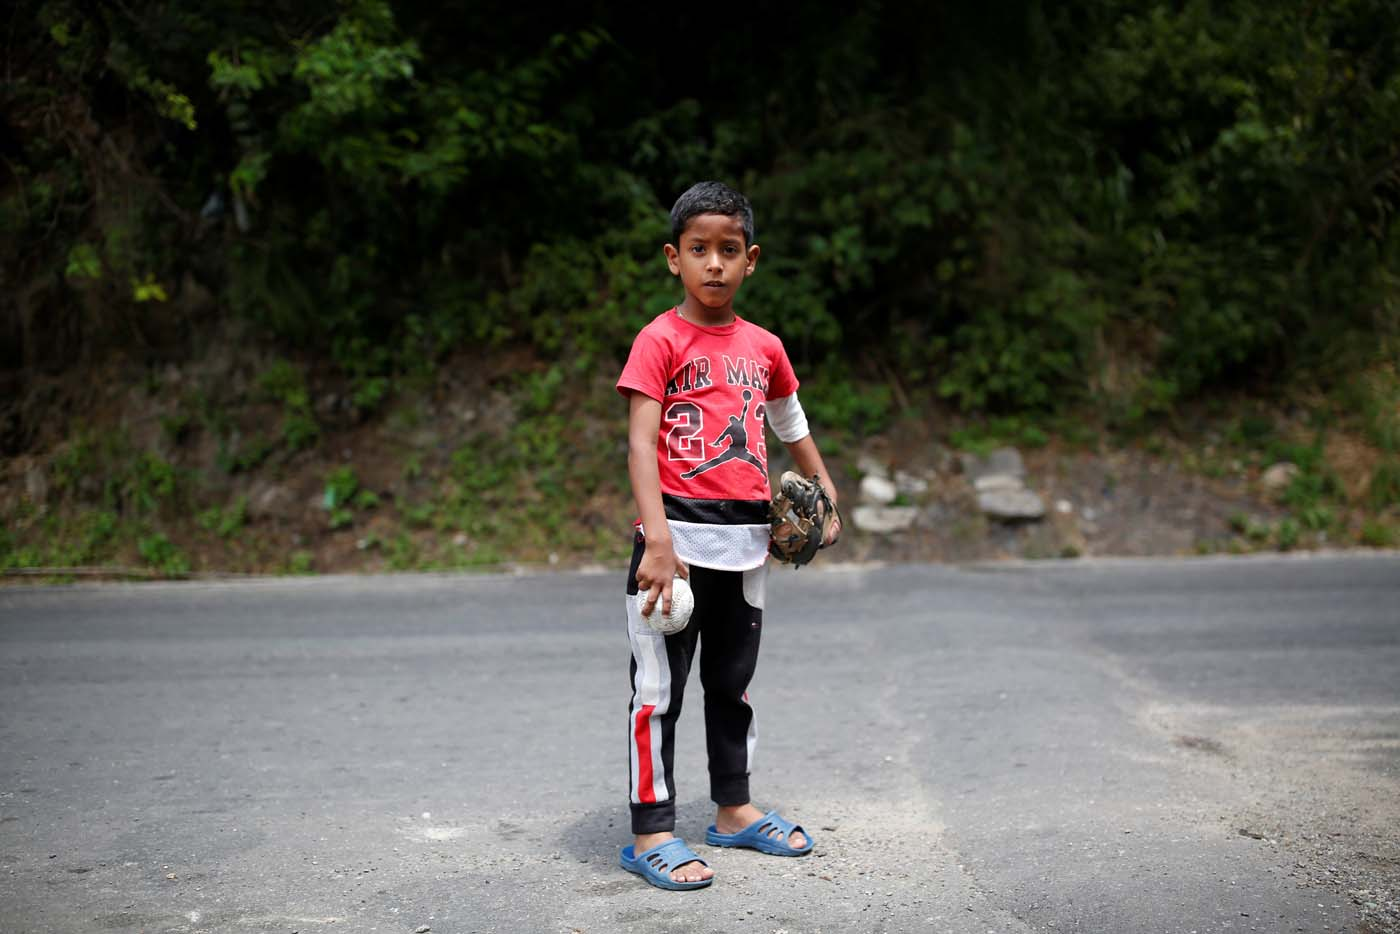 Luis Mejia, 7, poses for a picture after practice baseball on the street in Caracas, Venezuela August 29, 2017. Picture taken August 29, 2017. REUTERS/Carlos Garcia Rawlins